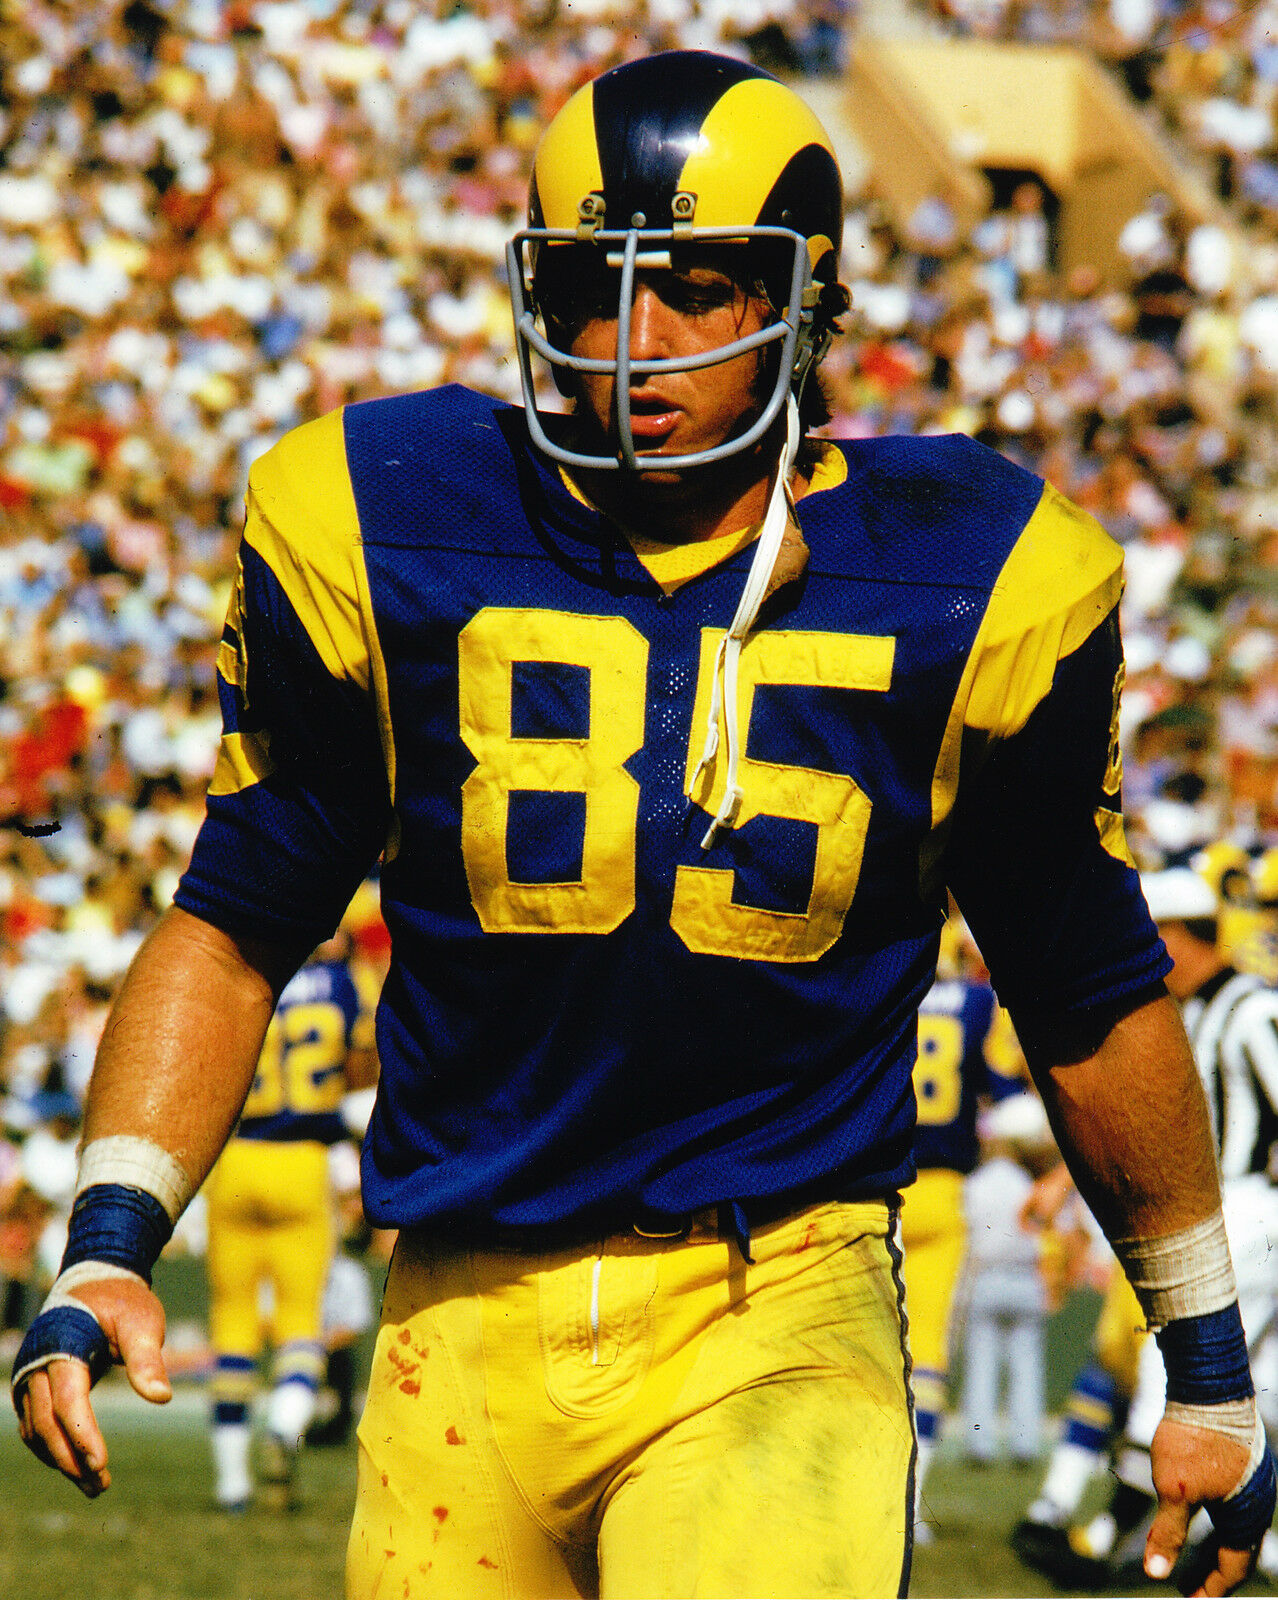 JACK YOUNGBLOOD ~ 8 x 10 Photo ~ LOS ANGELES RAMS ~ Great picture for ...: picclick.com/jack-youngblood-8-x-10-photo-131615929974.html